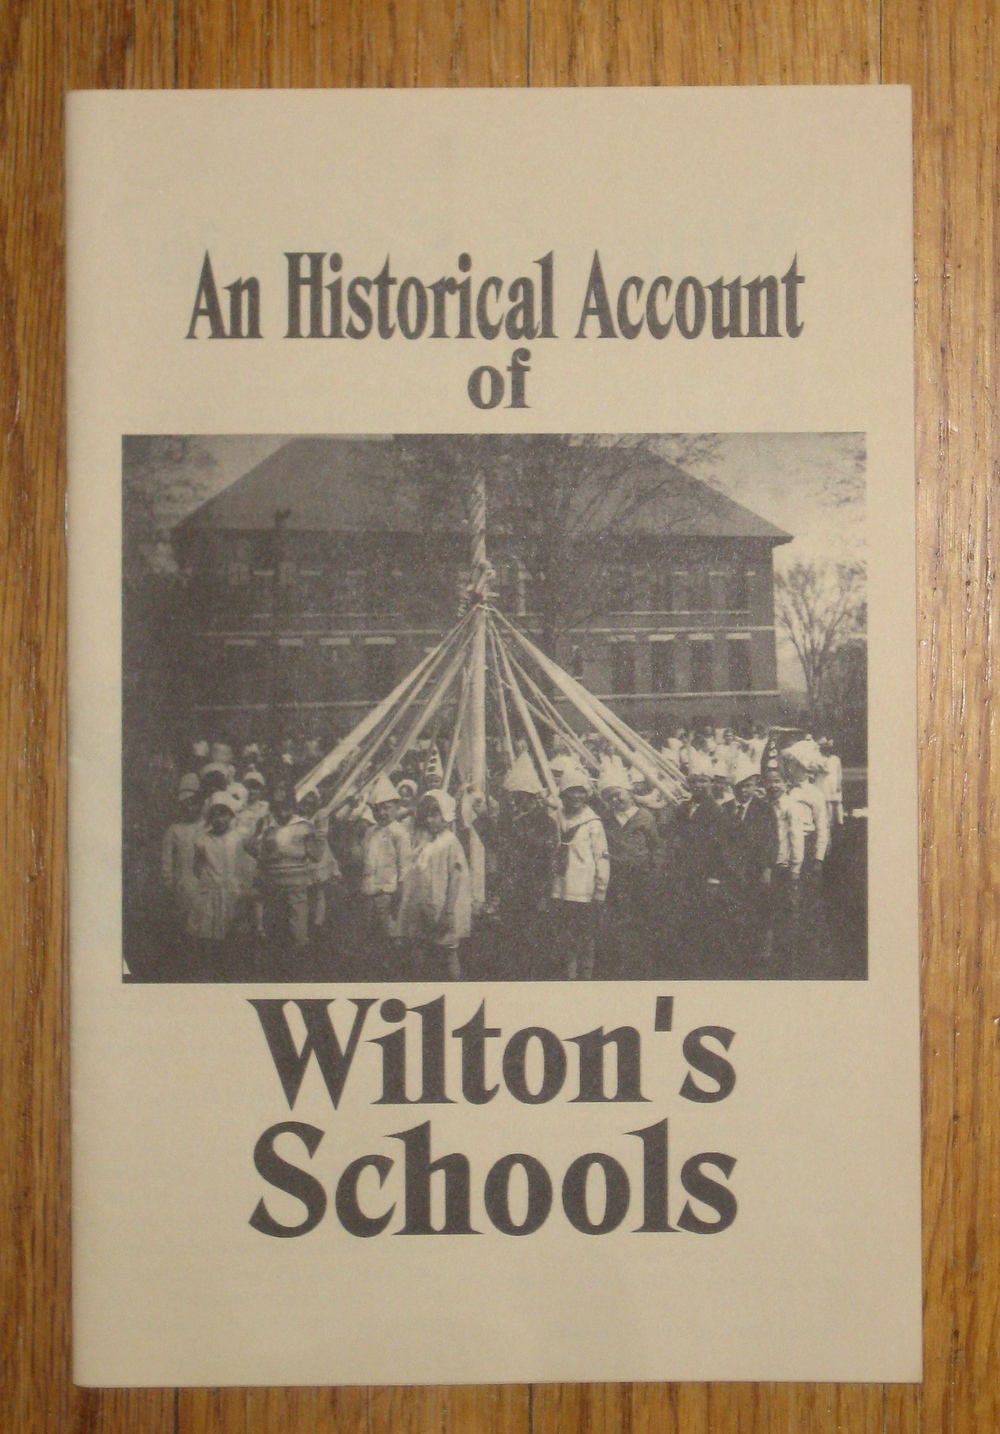 A 1930's Maypole ,  Booklet from the Wilton Historical Society, used by permission